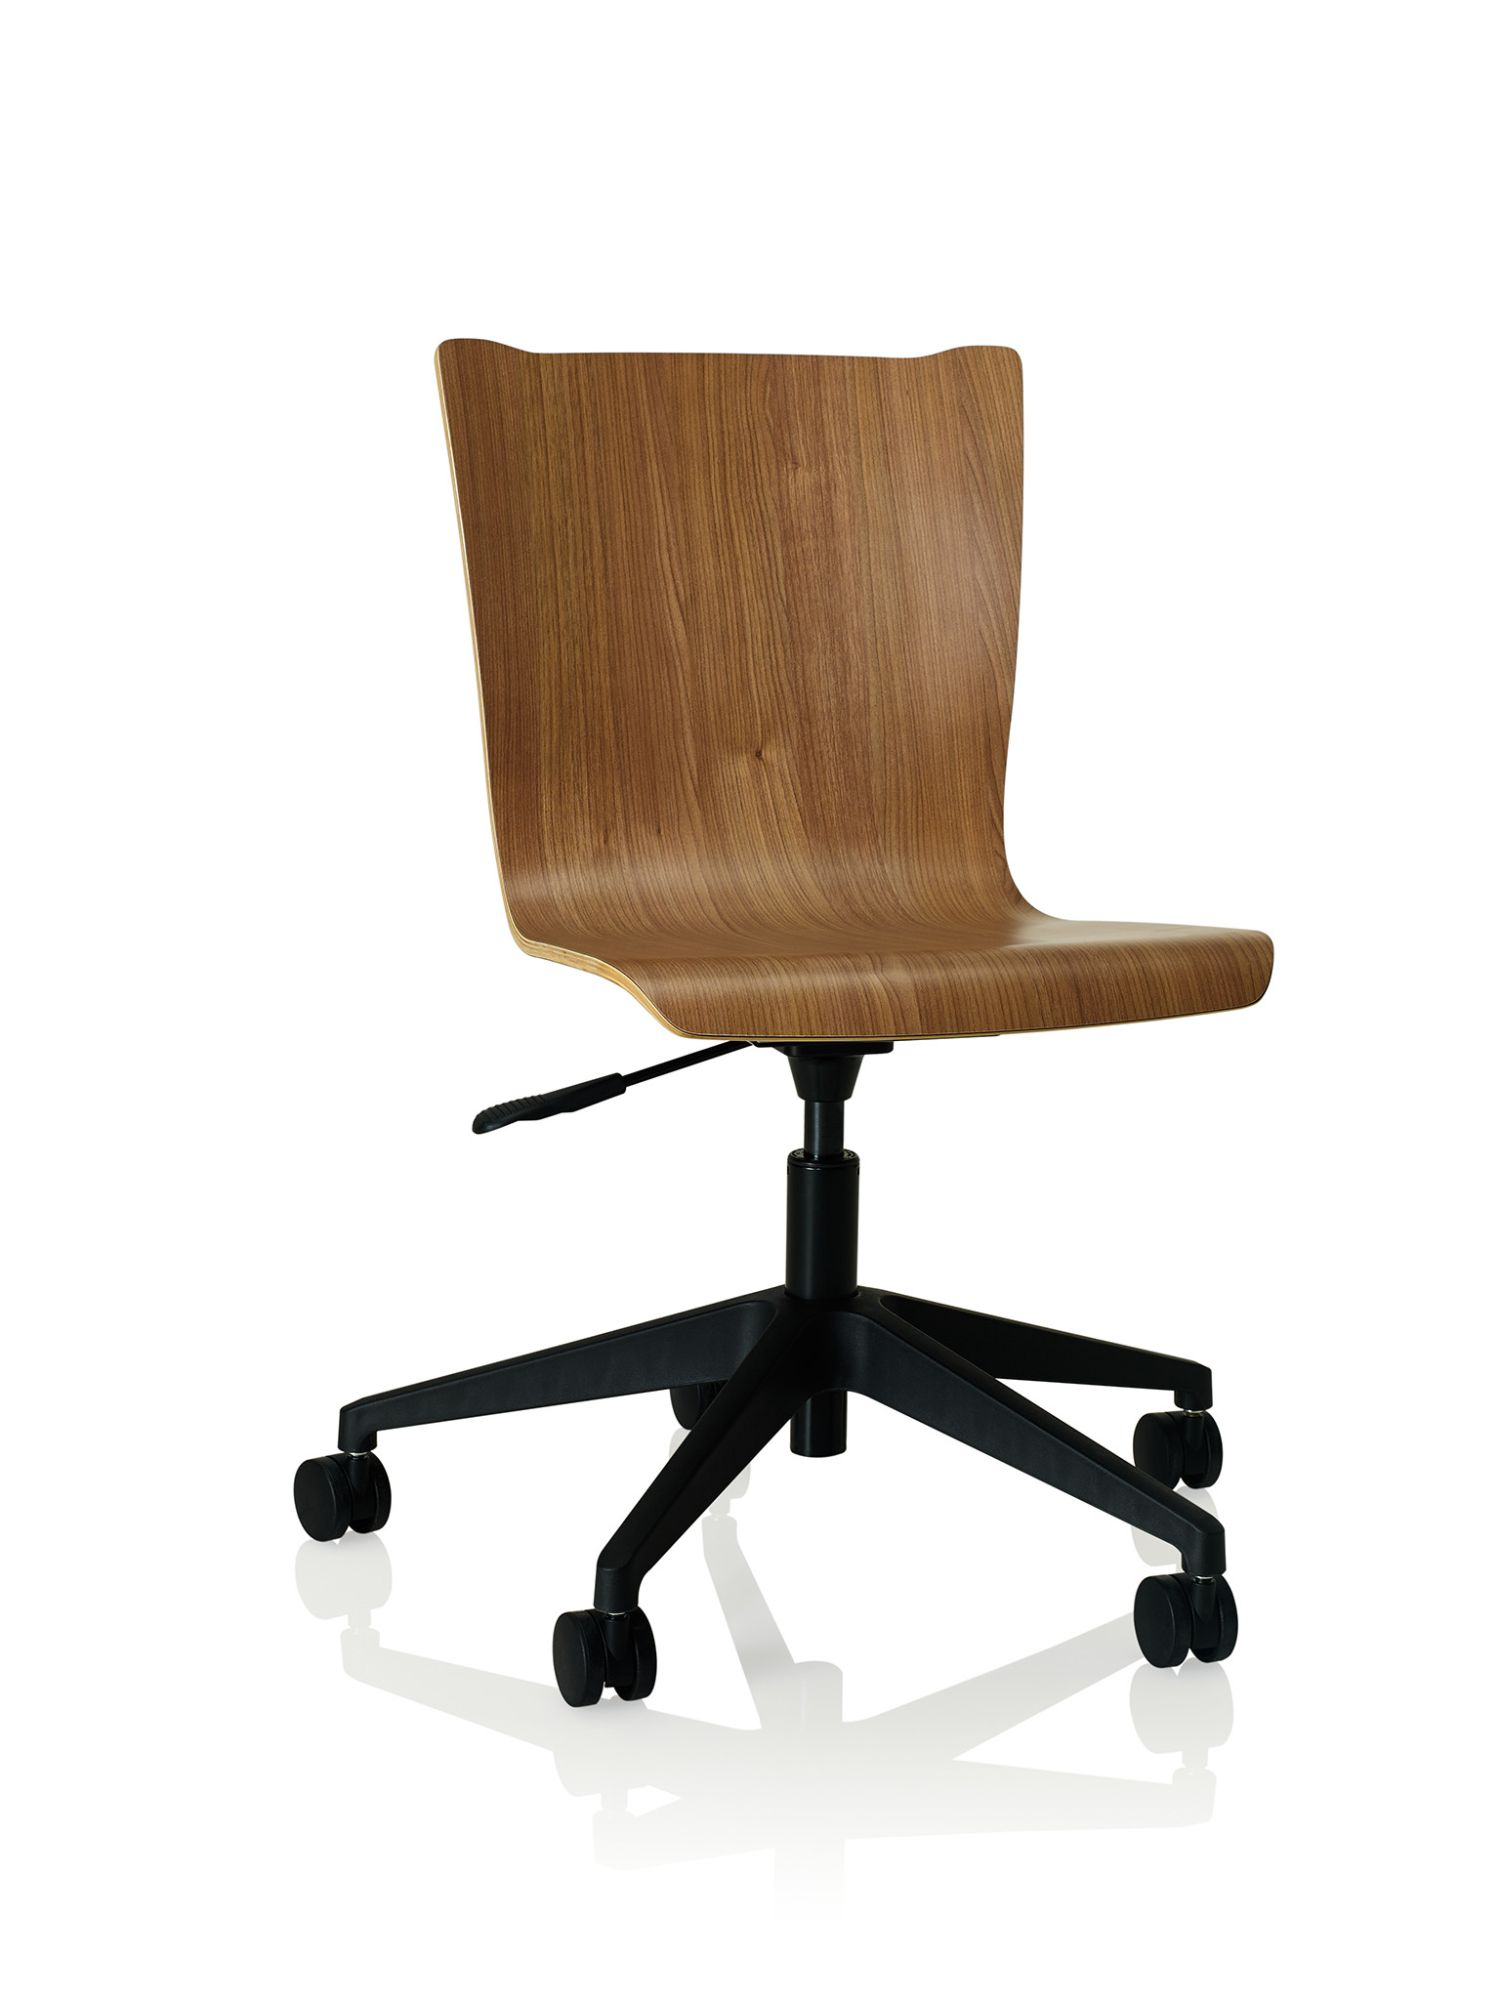 river cherry apply laminate task chair